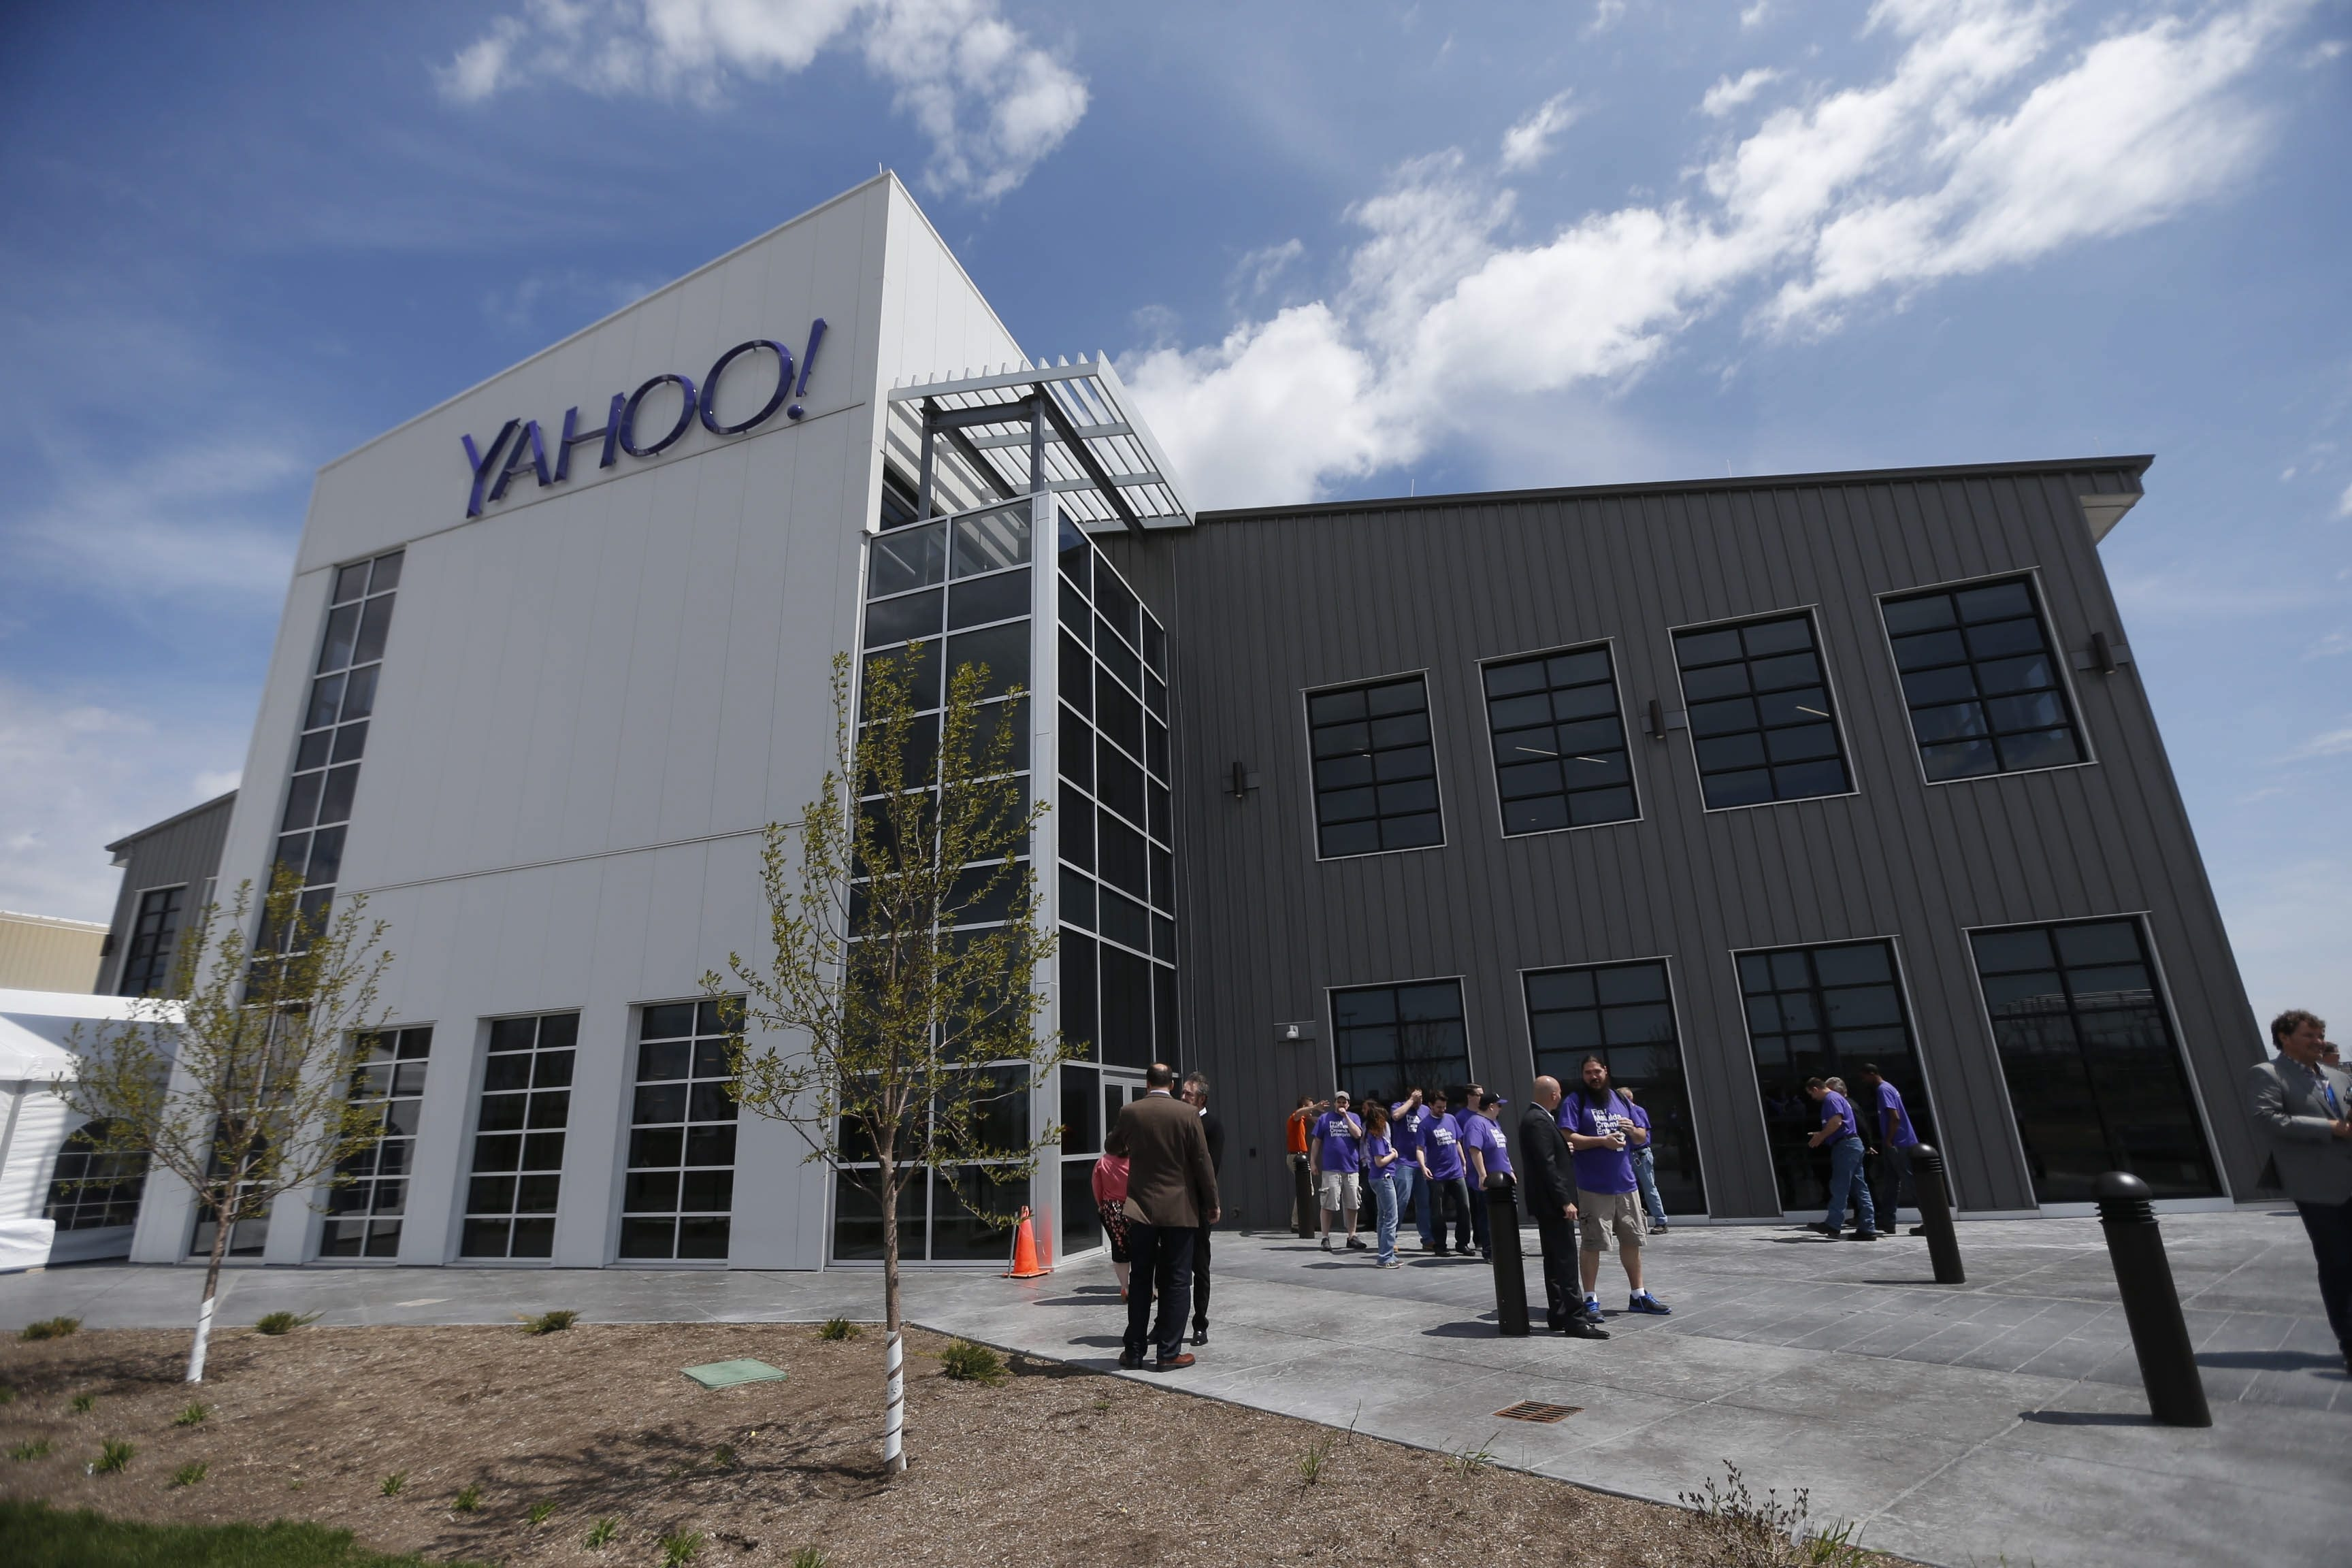 Yahoo employees gather outside the company's second data center and new customer call center on its Lockport campus for a grand opening celebration on Thursday. Yahoo has invested $170 million in its Lockport project so far.